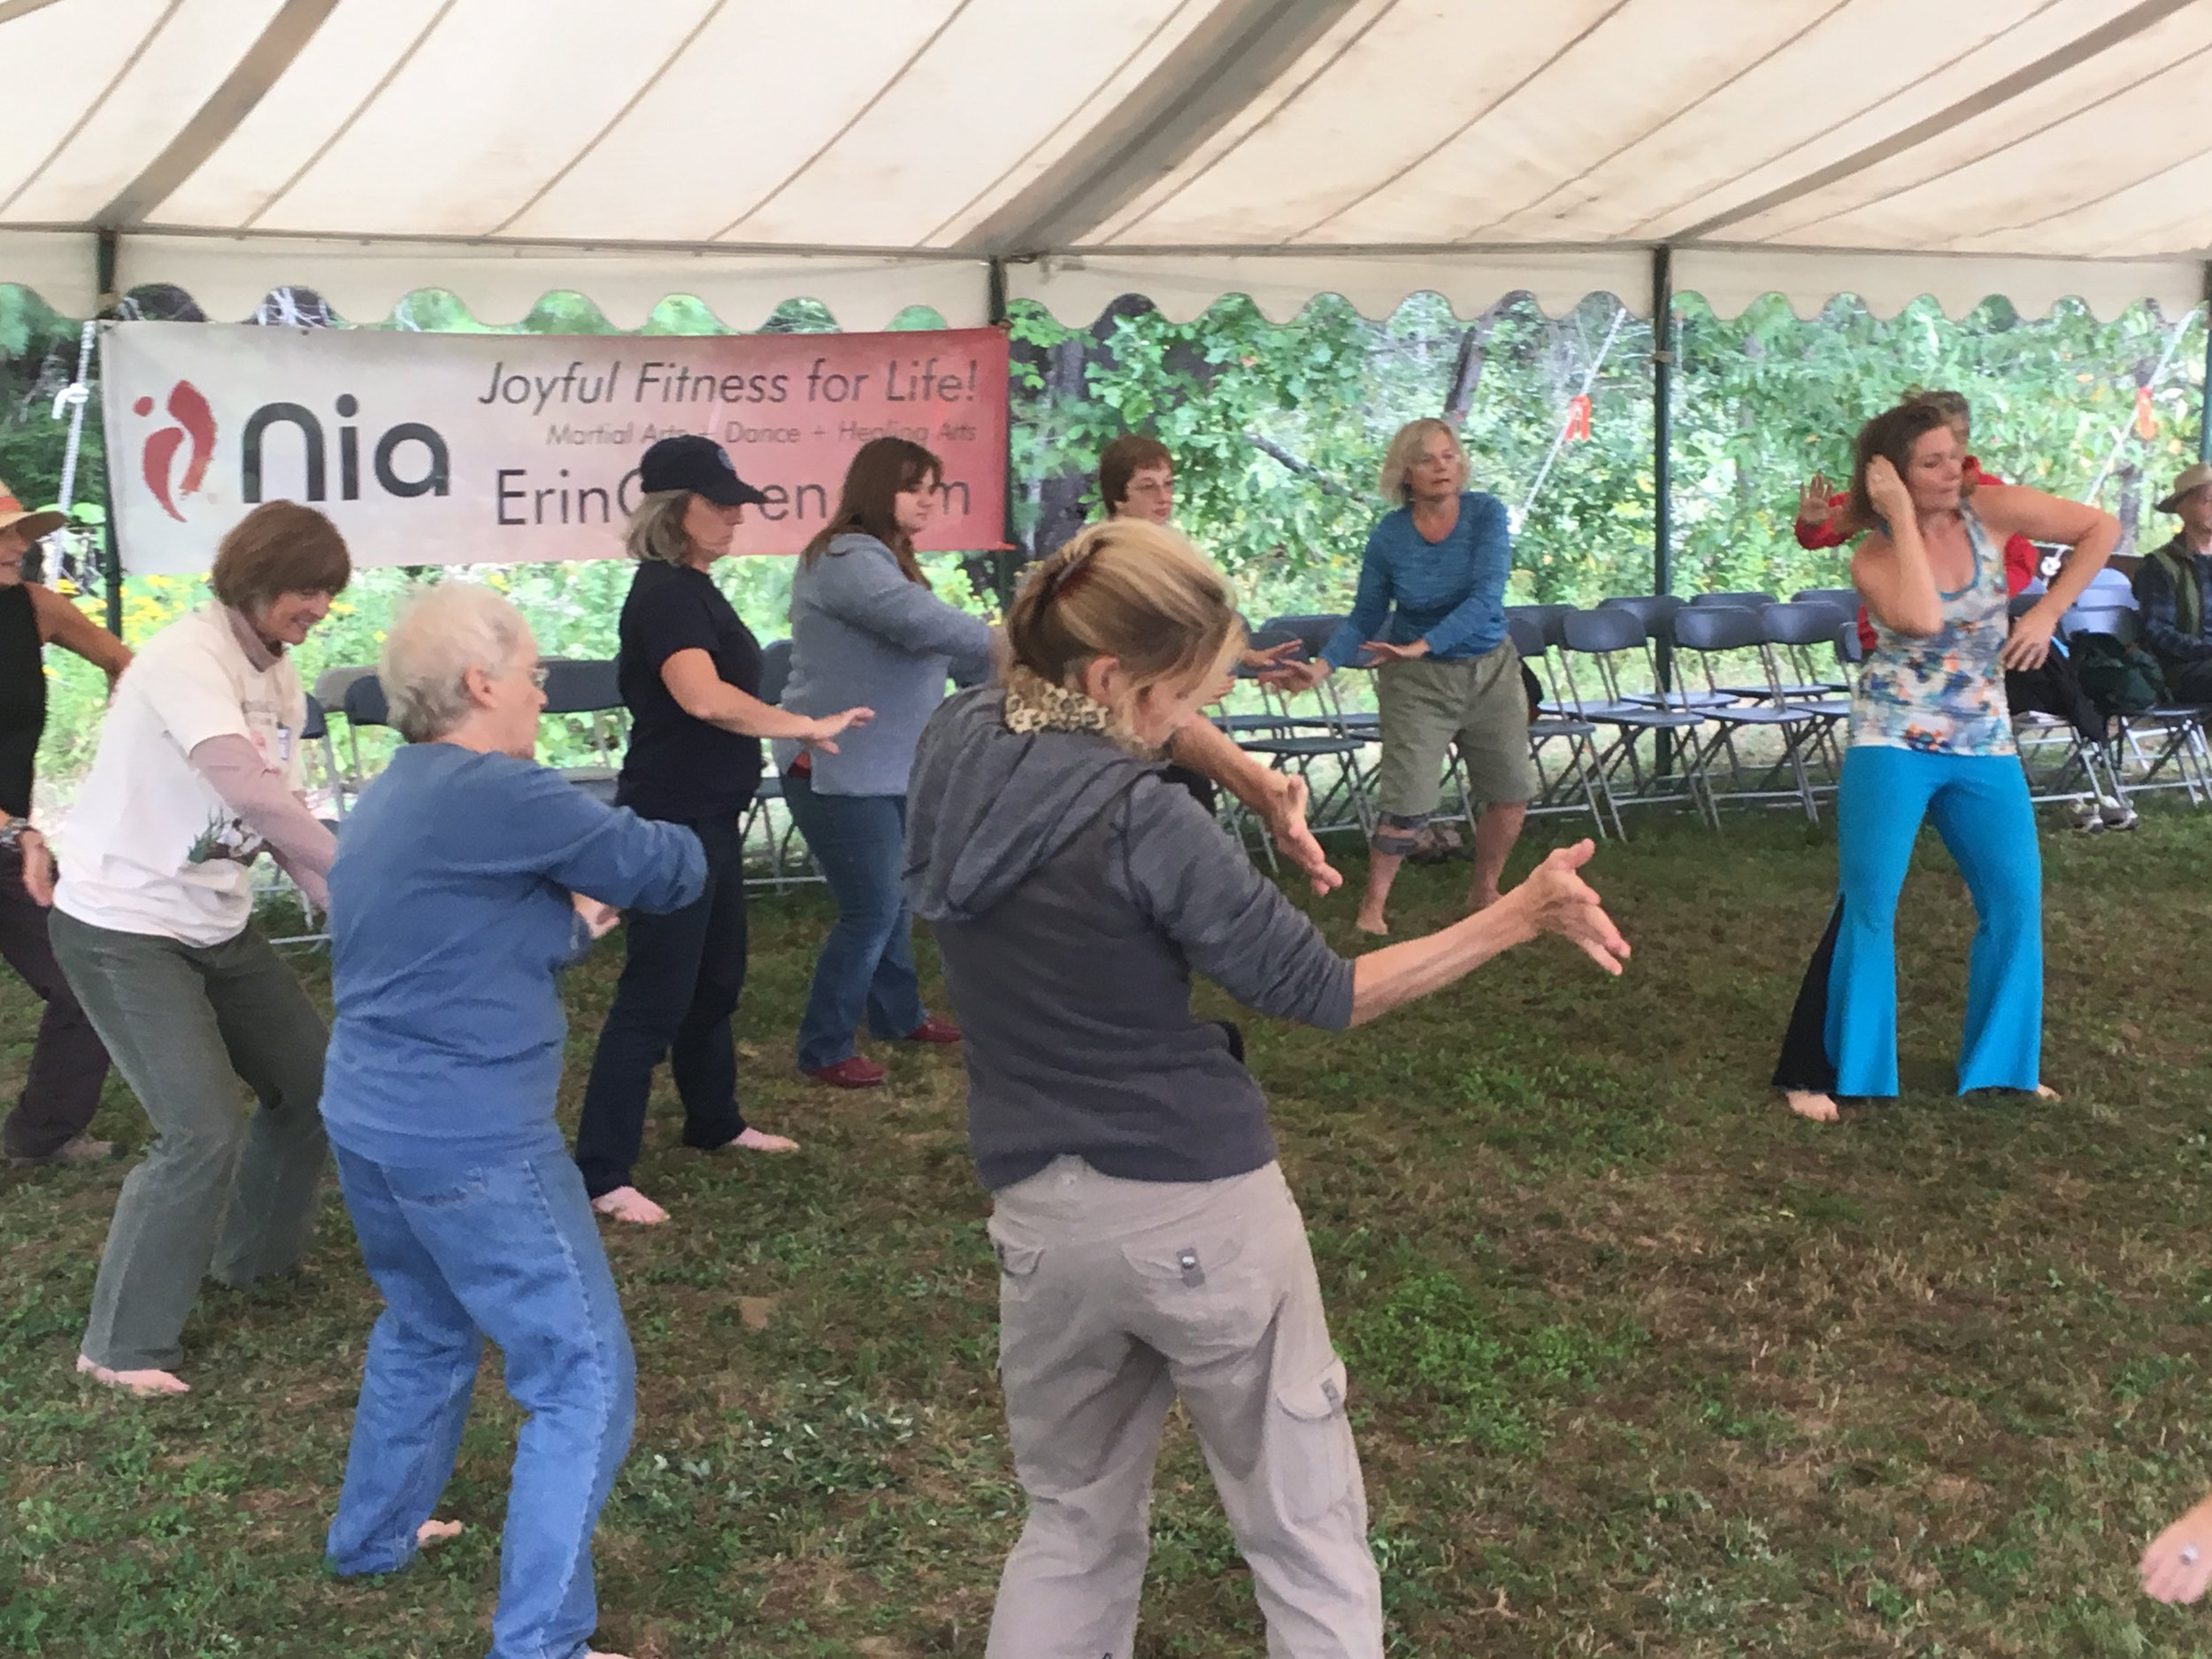 Each September I volunteer to bring Nia to the Common Ground Fair in Unity, Maine. Look for us Friday, September 20, 2019 at 10am at the Whole Life Tent! All are welcome, and the class experience is included in your entry to the Fair.